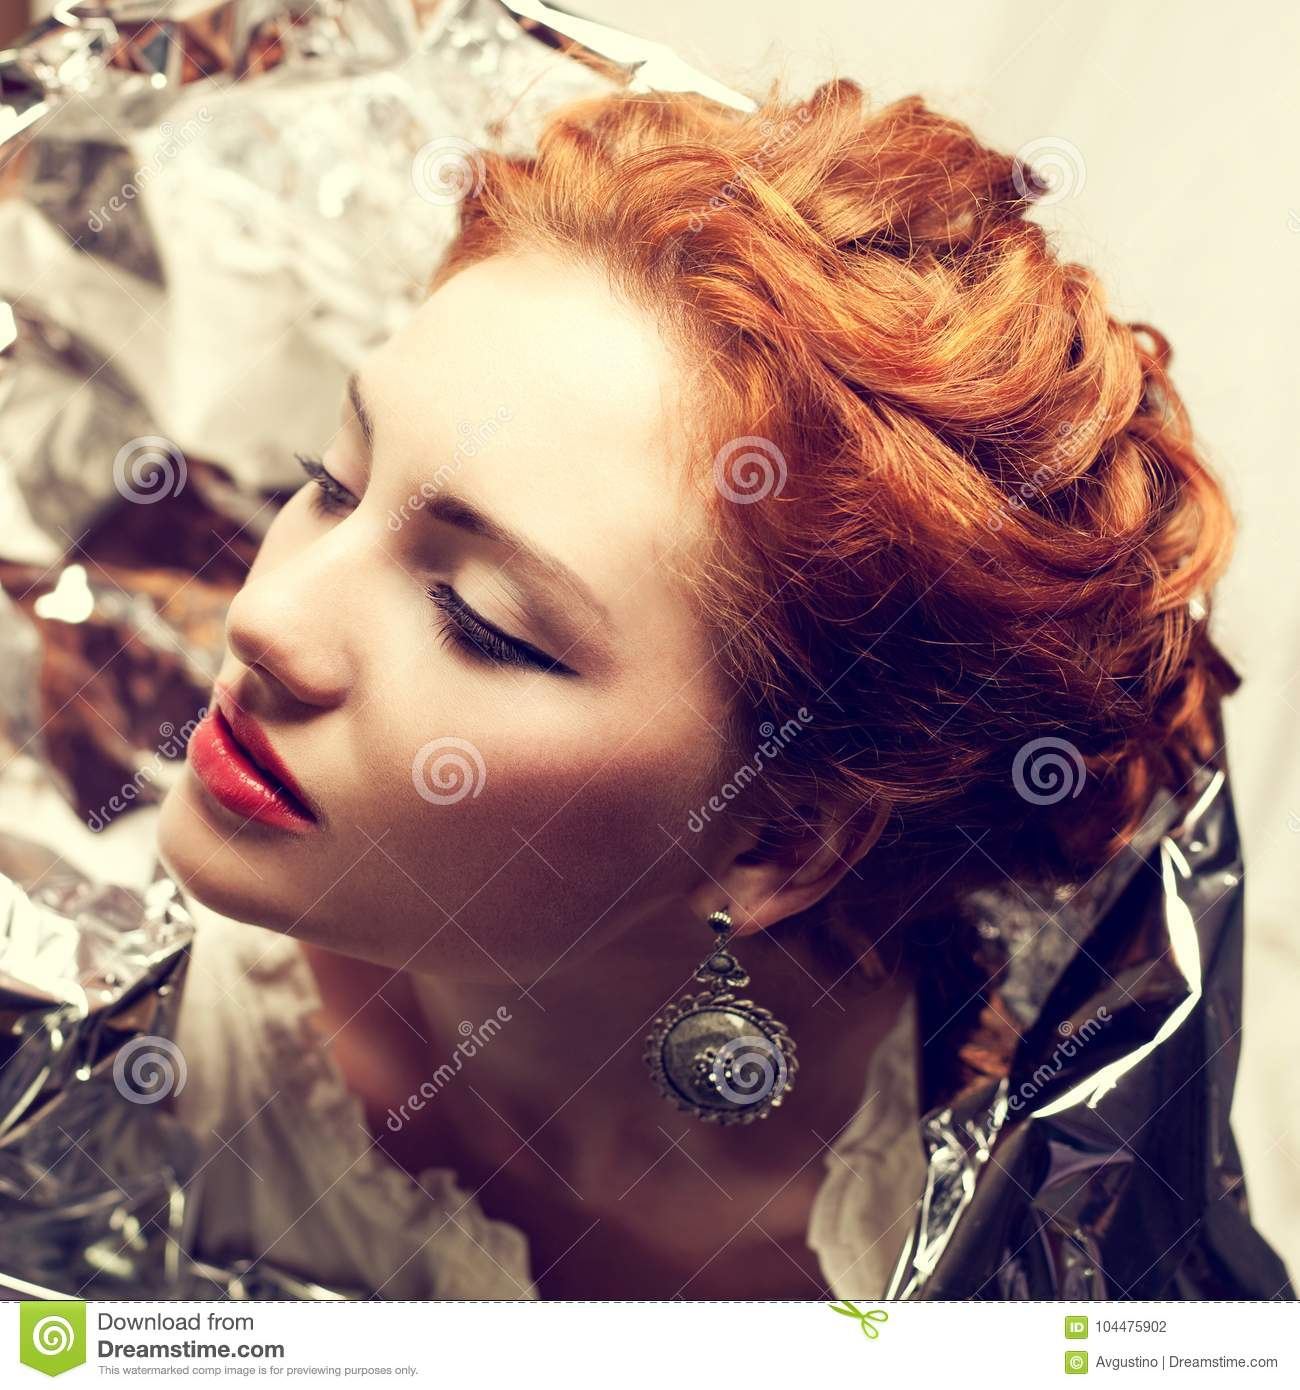 Arty portrait of fashionable queen-like red-haired queen